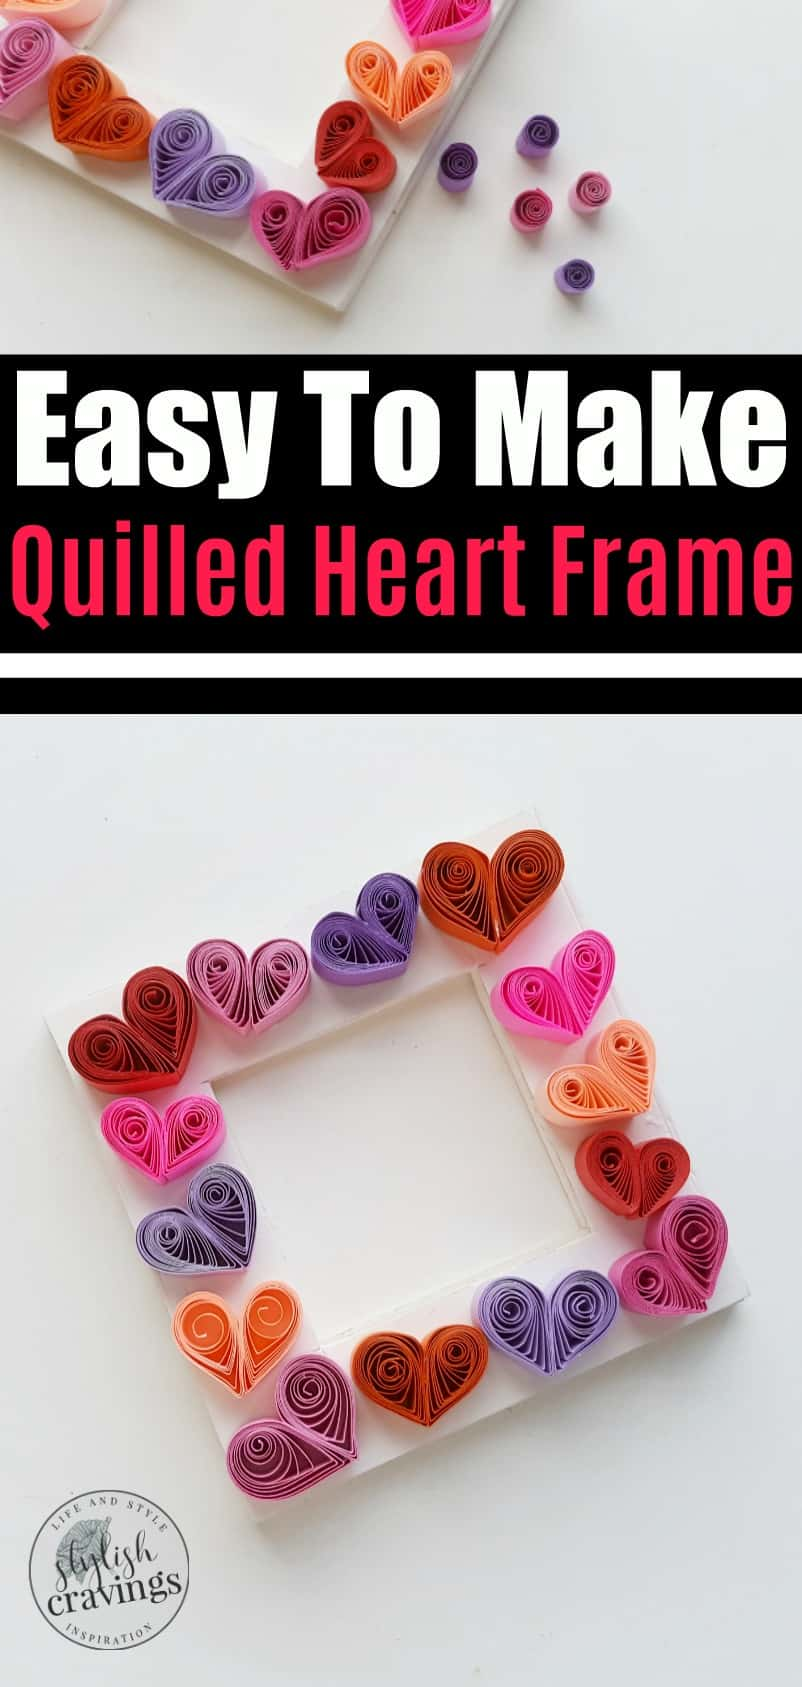 Quilled Heart Frame